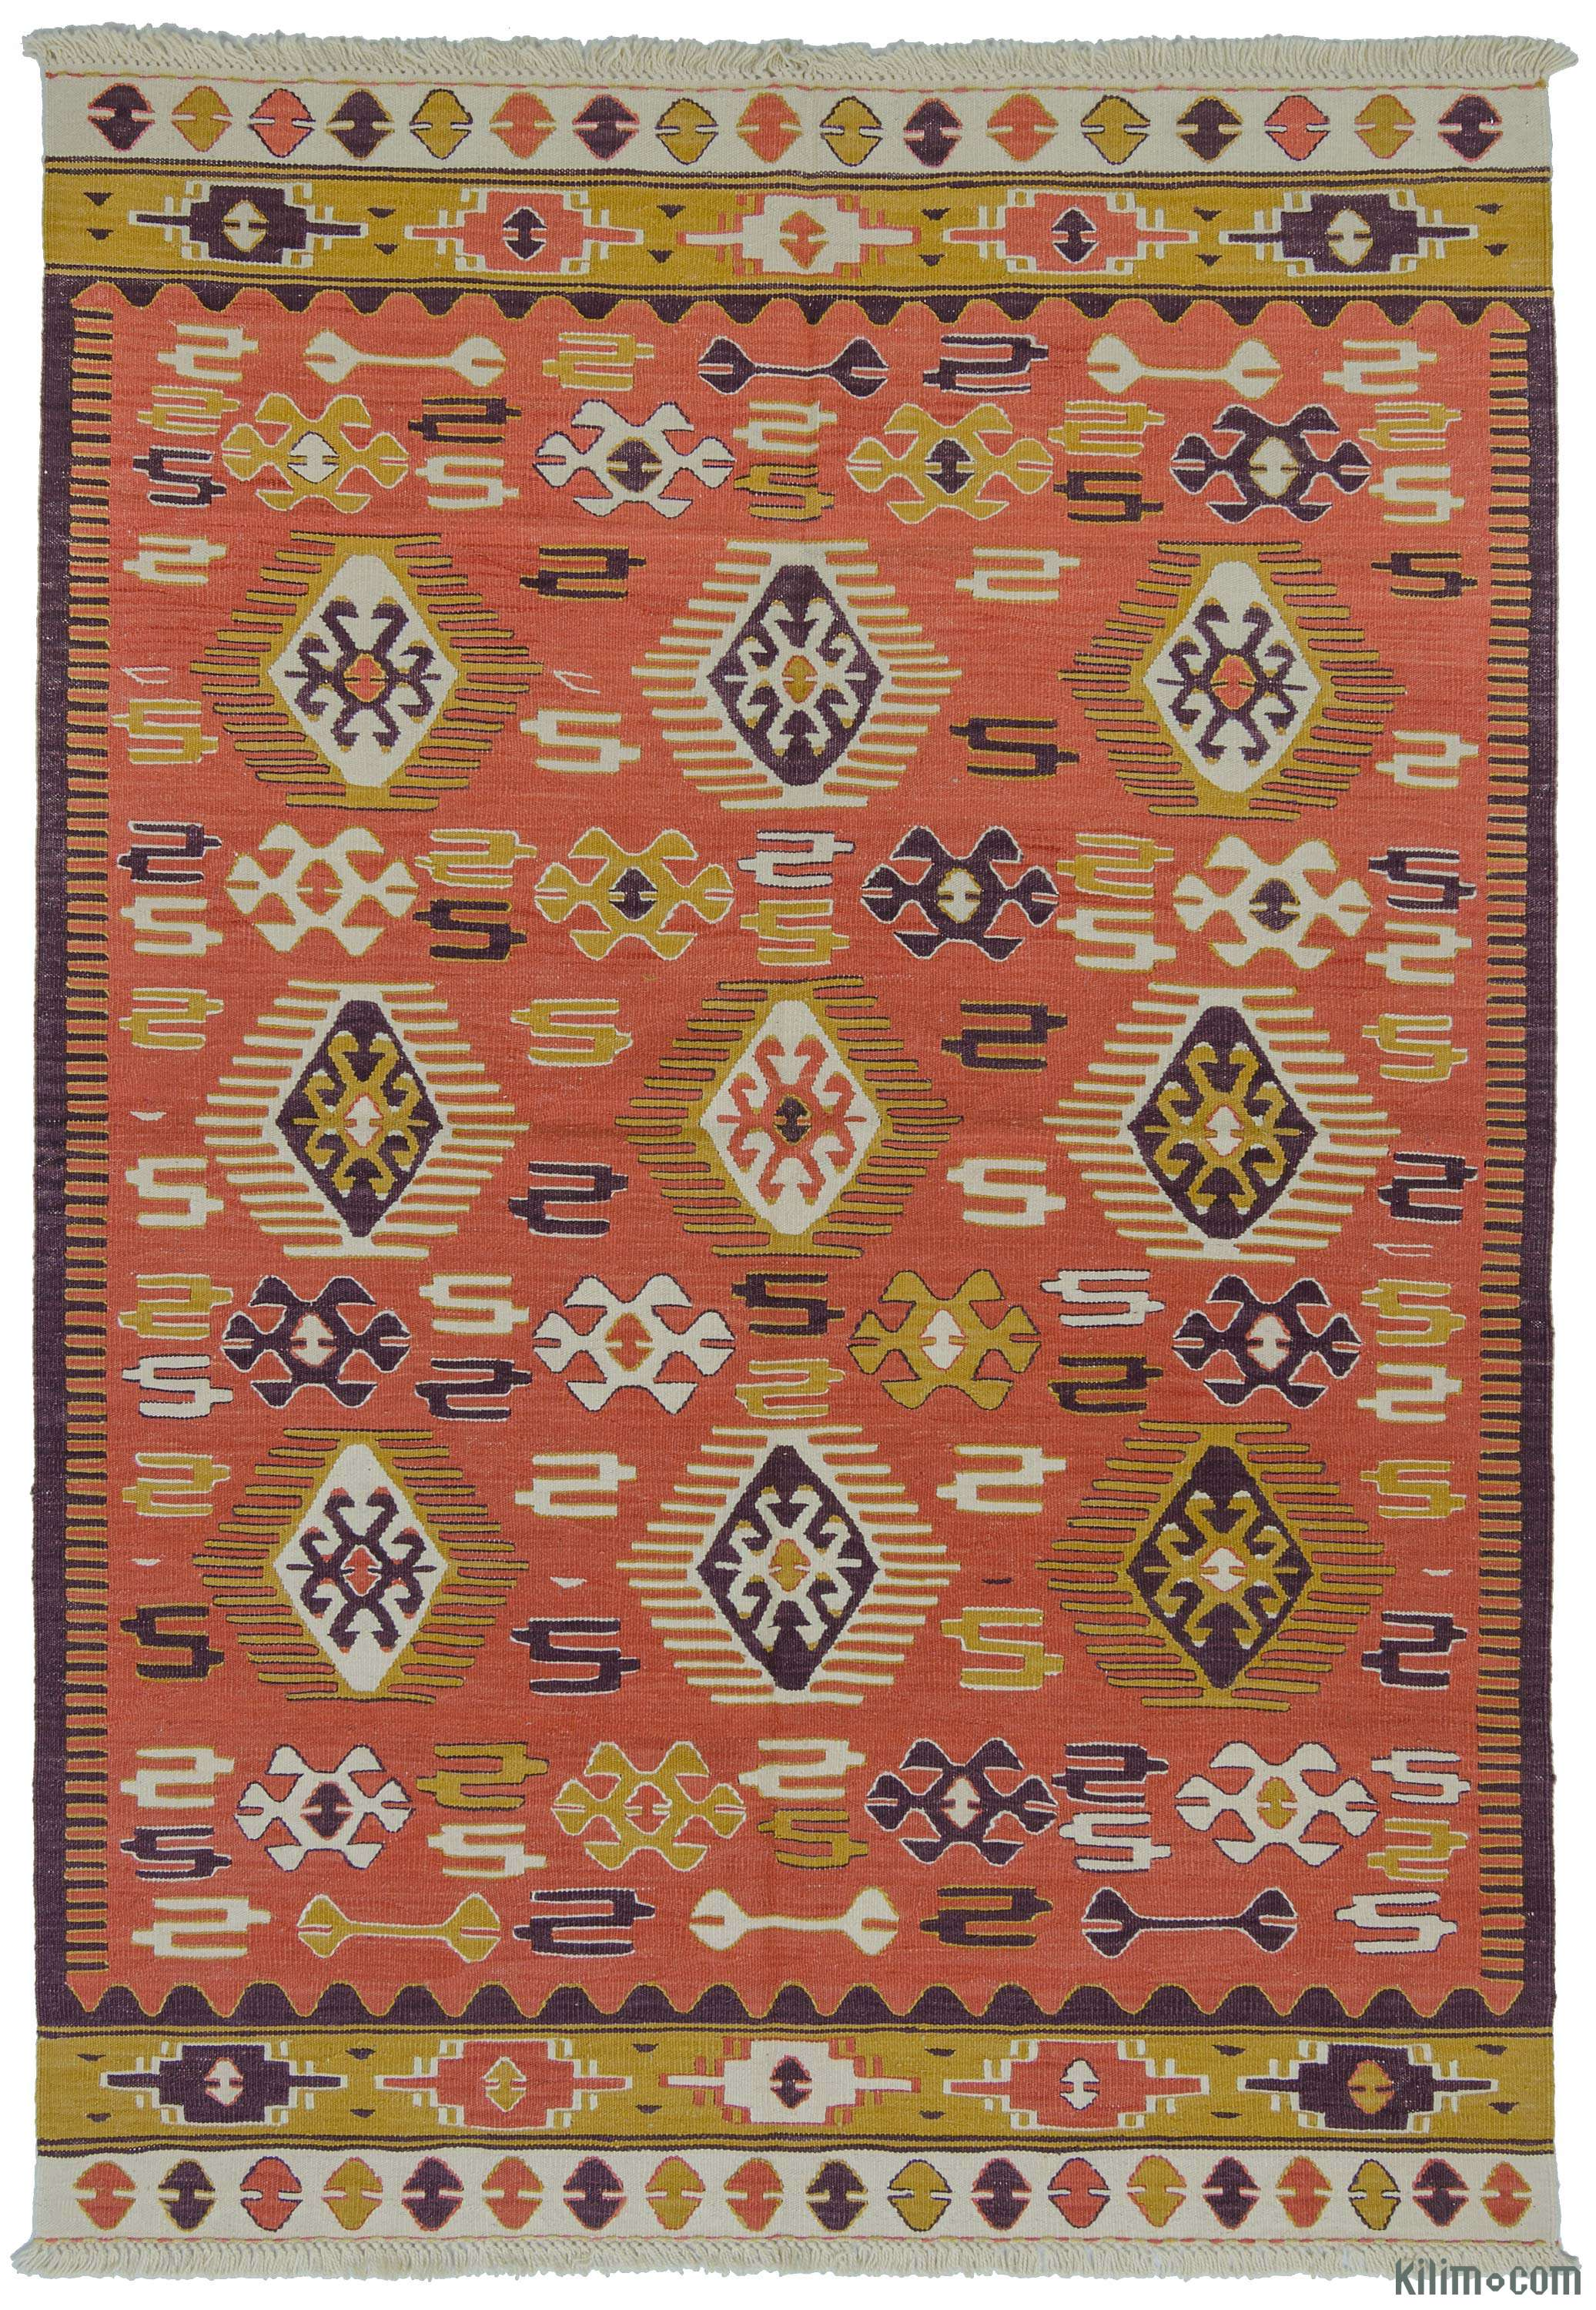 Rugs And Kilims Are The Master Elements Of Bohemian Style: Custom Rugs